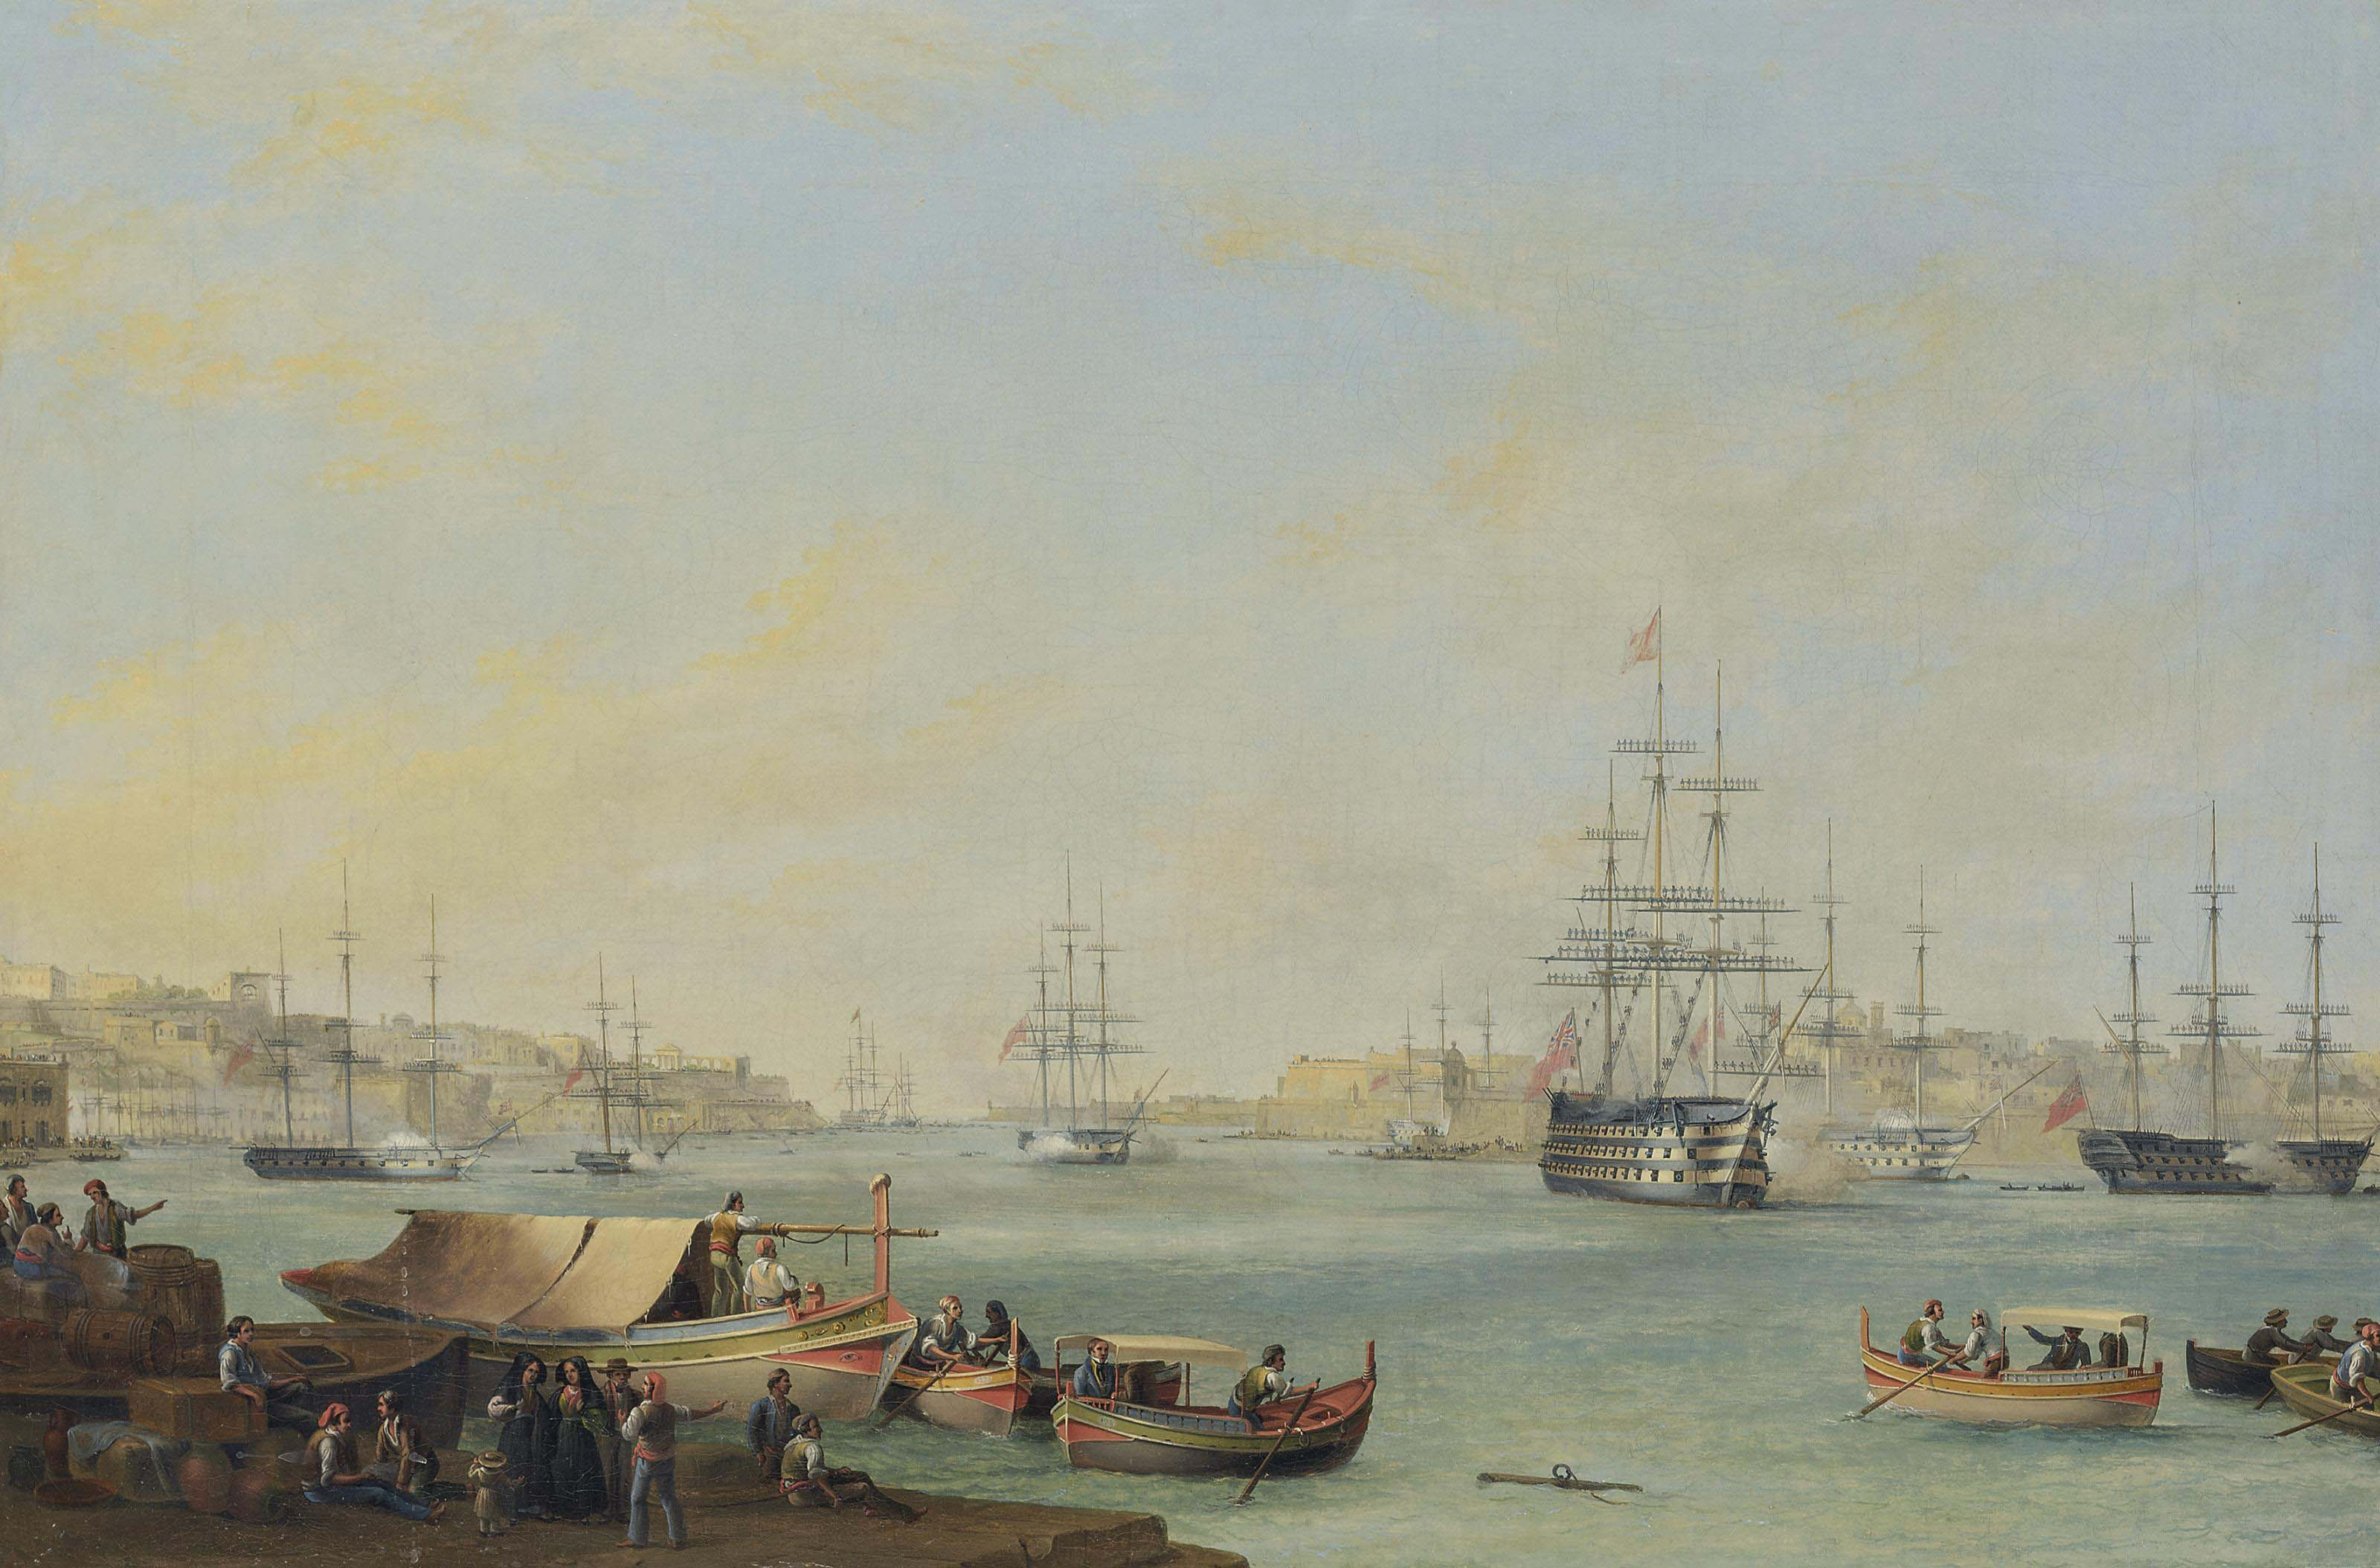 The arrival of the Dowager Queen Adelaide aboard H.M.S. Hastings at the Grand Harbour, Valletta, 30 November 1838